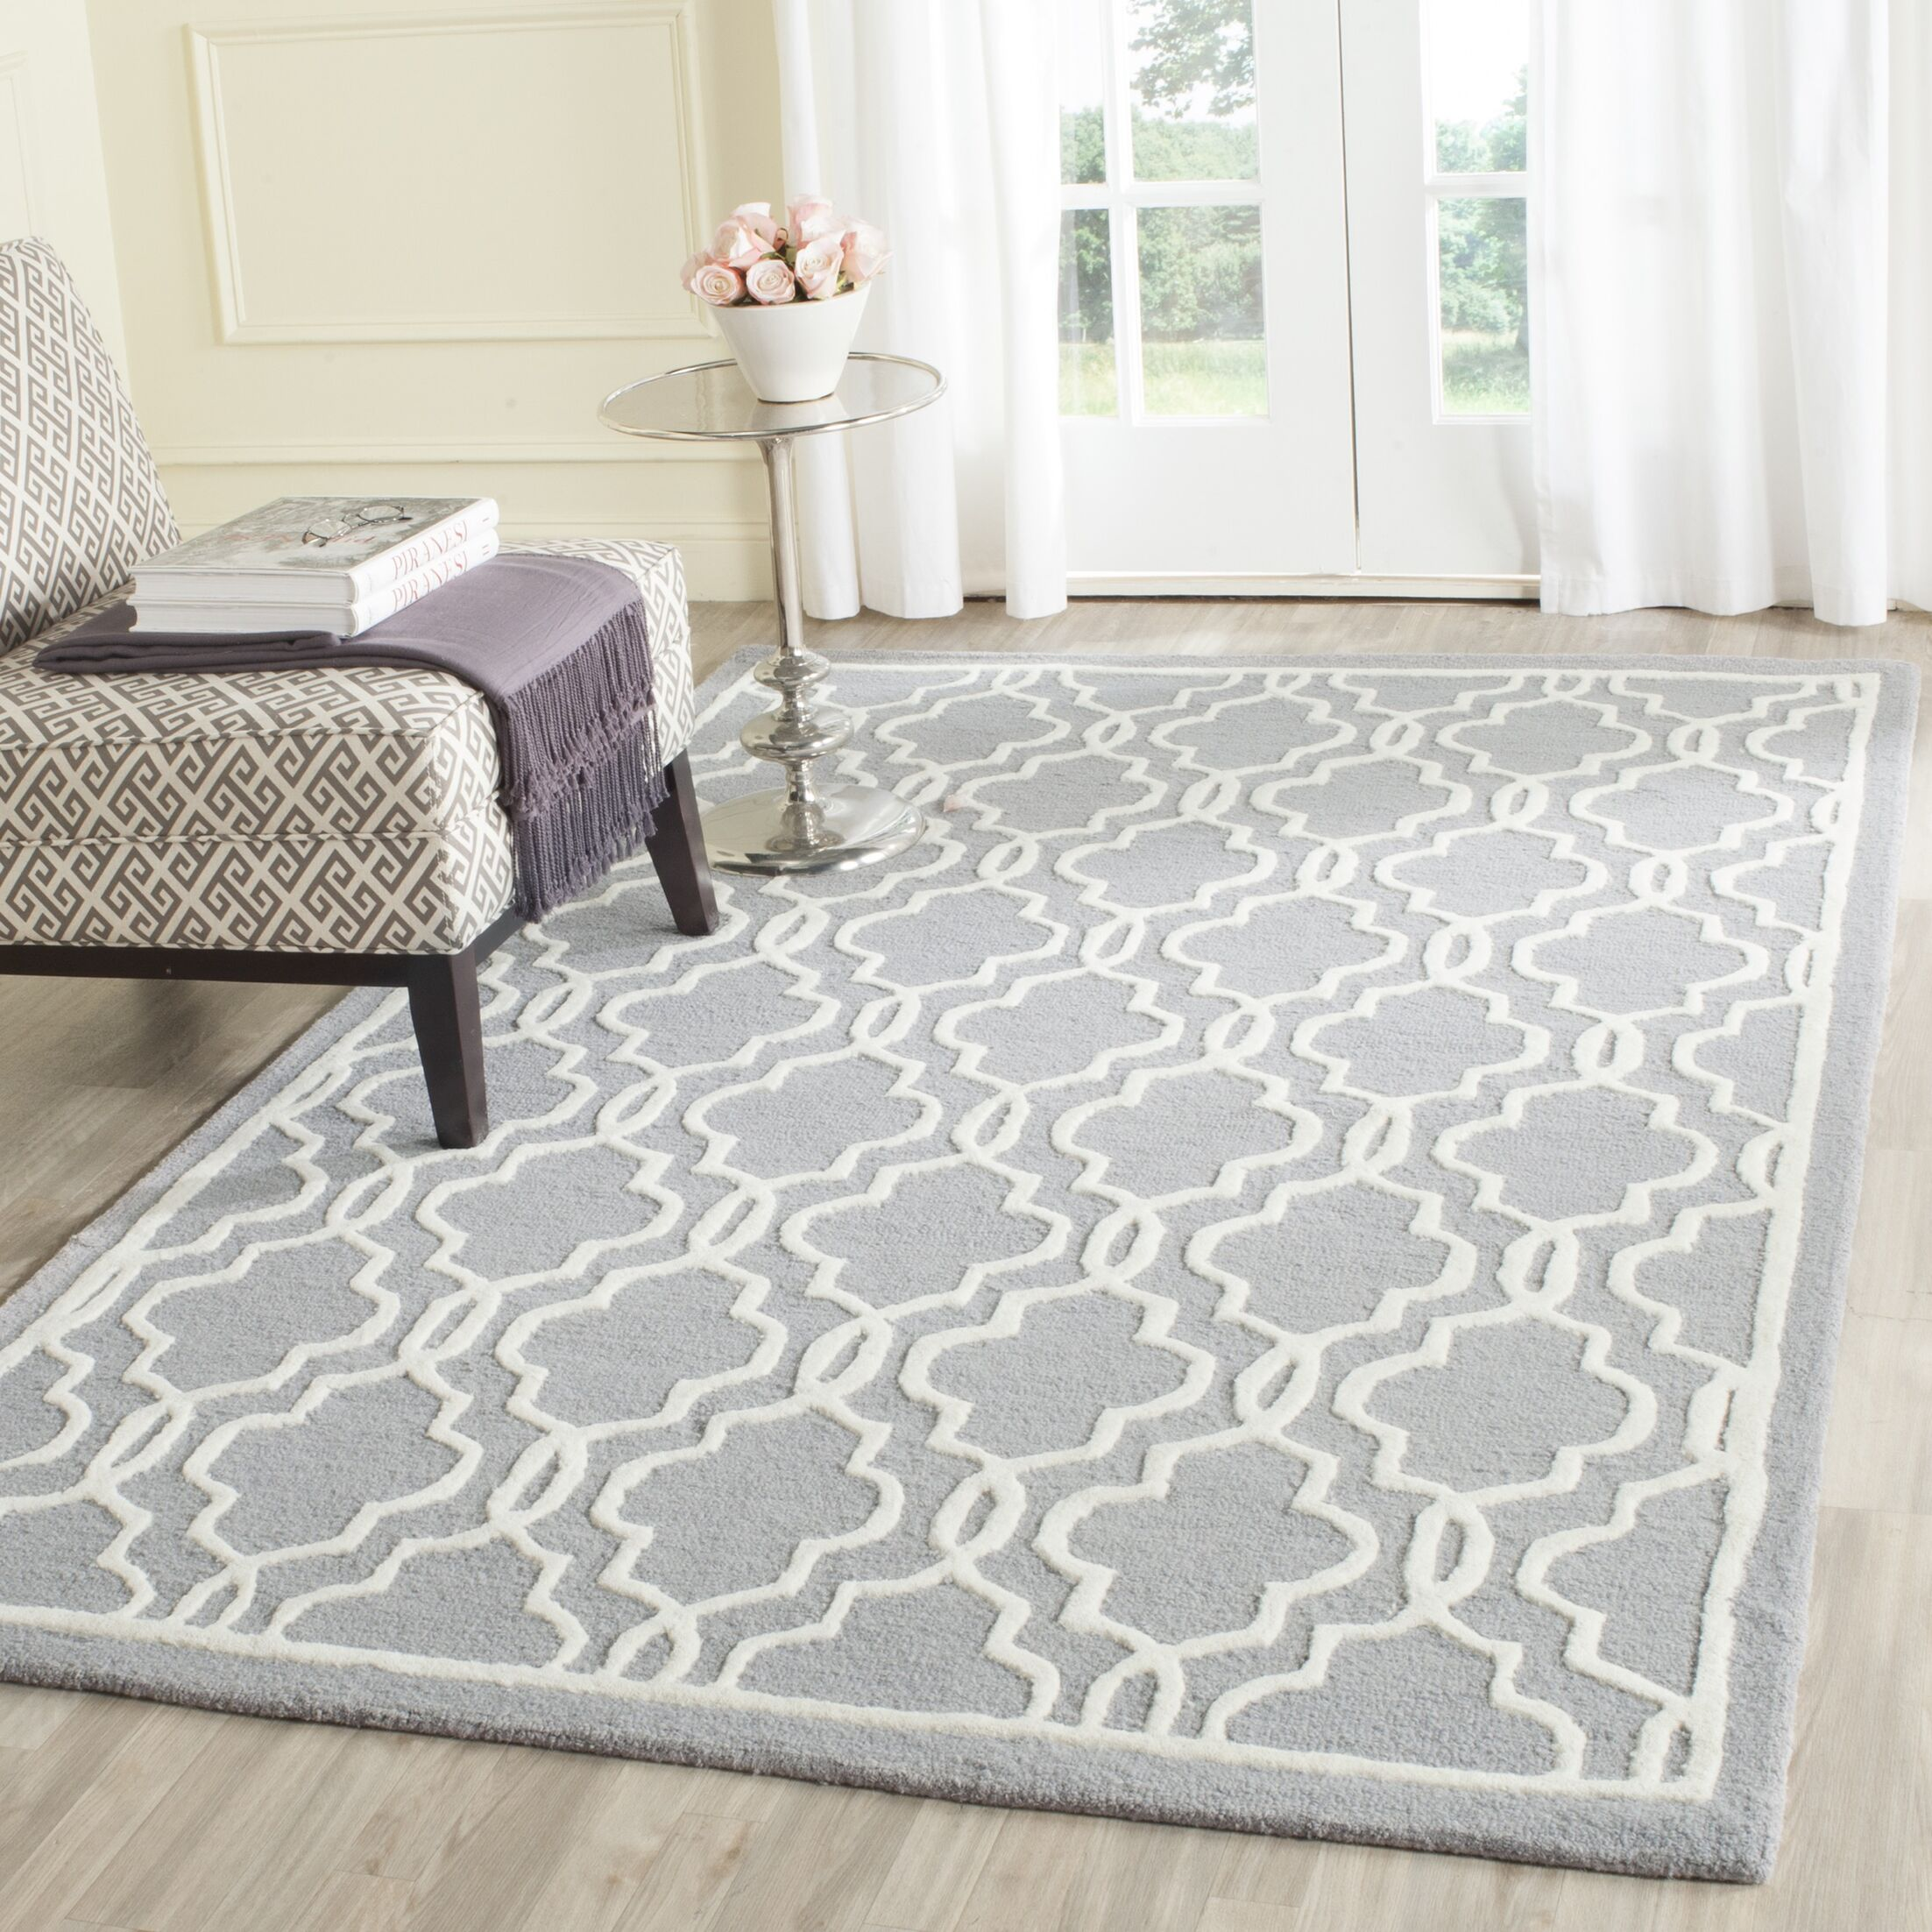 Martins Hand-Tufted Wool Silver/Ivory Area Rug Rug Size: Rectangle 6' x 9'